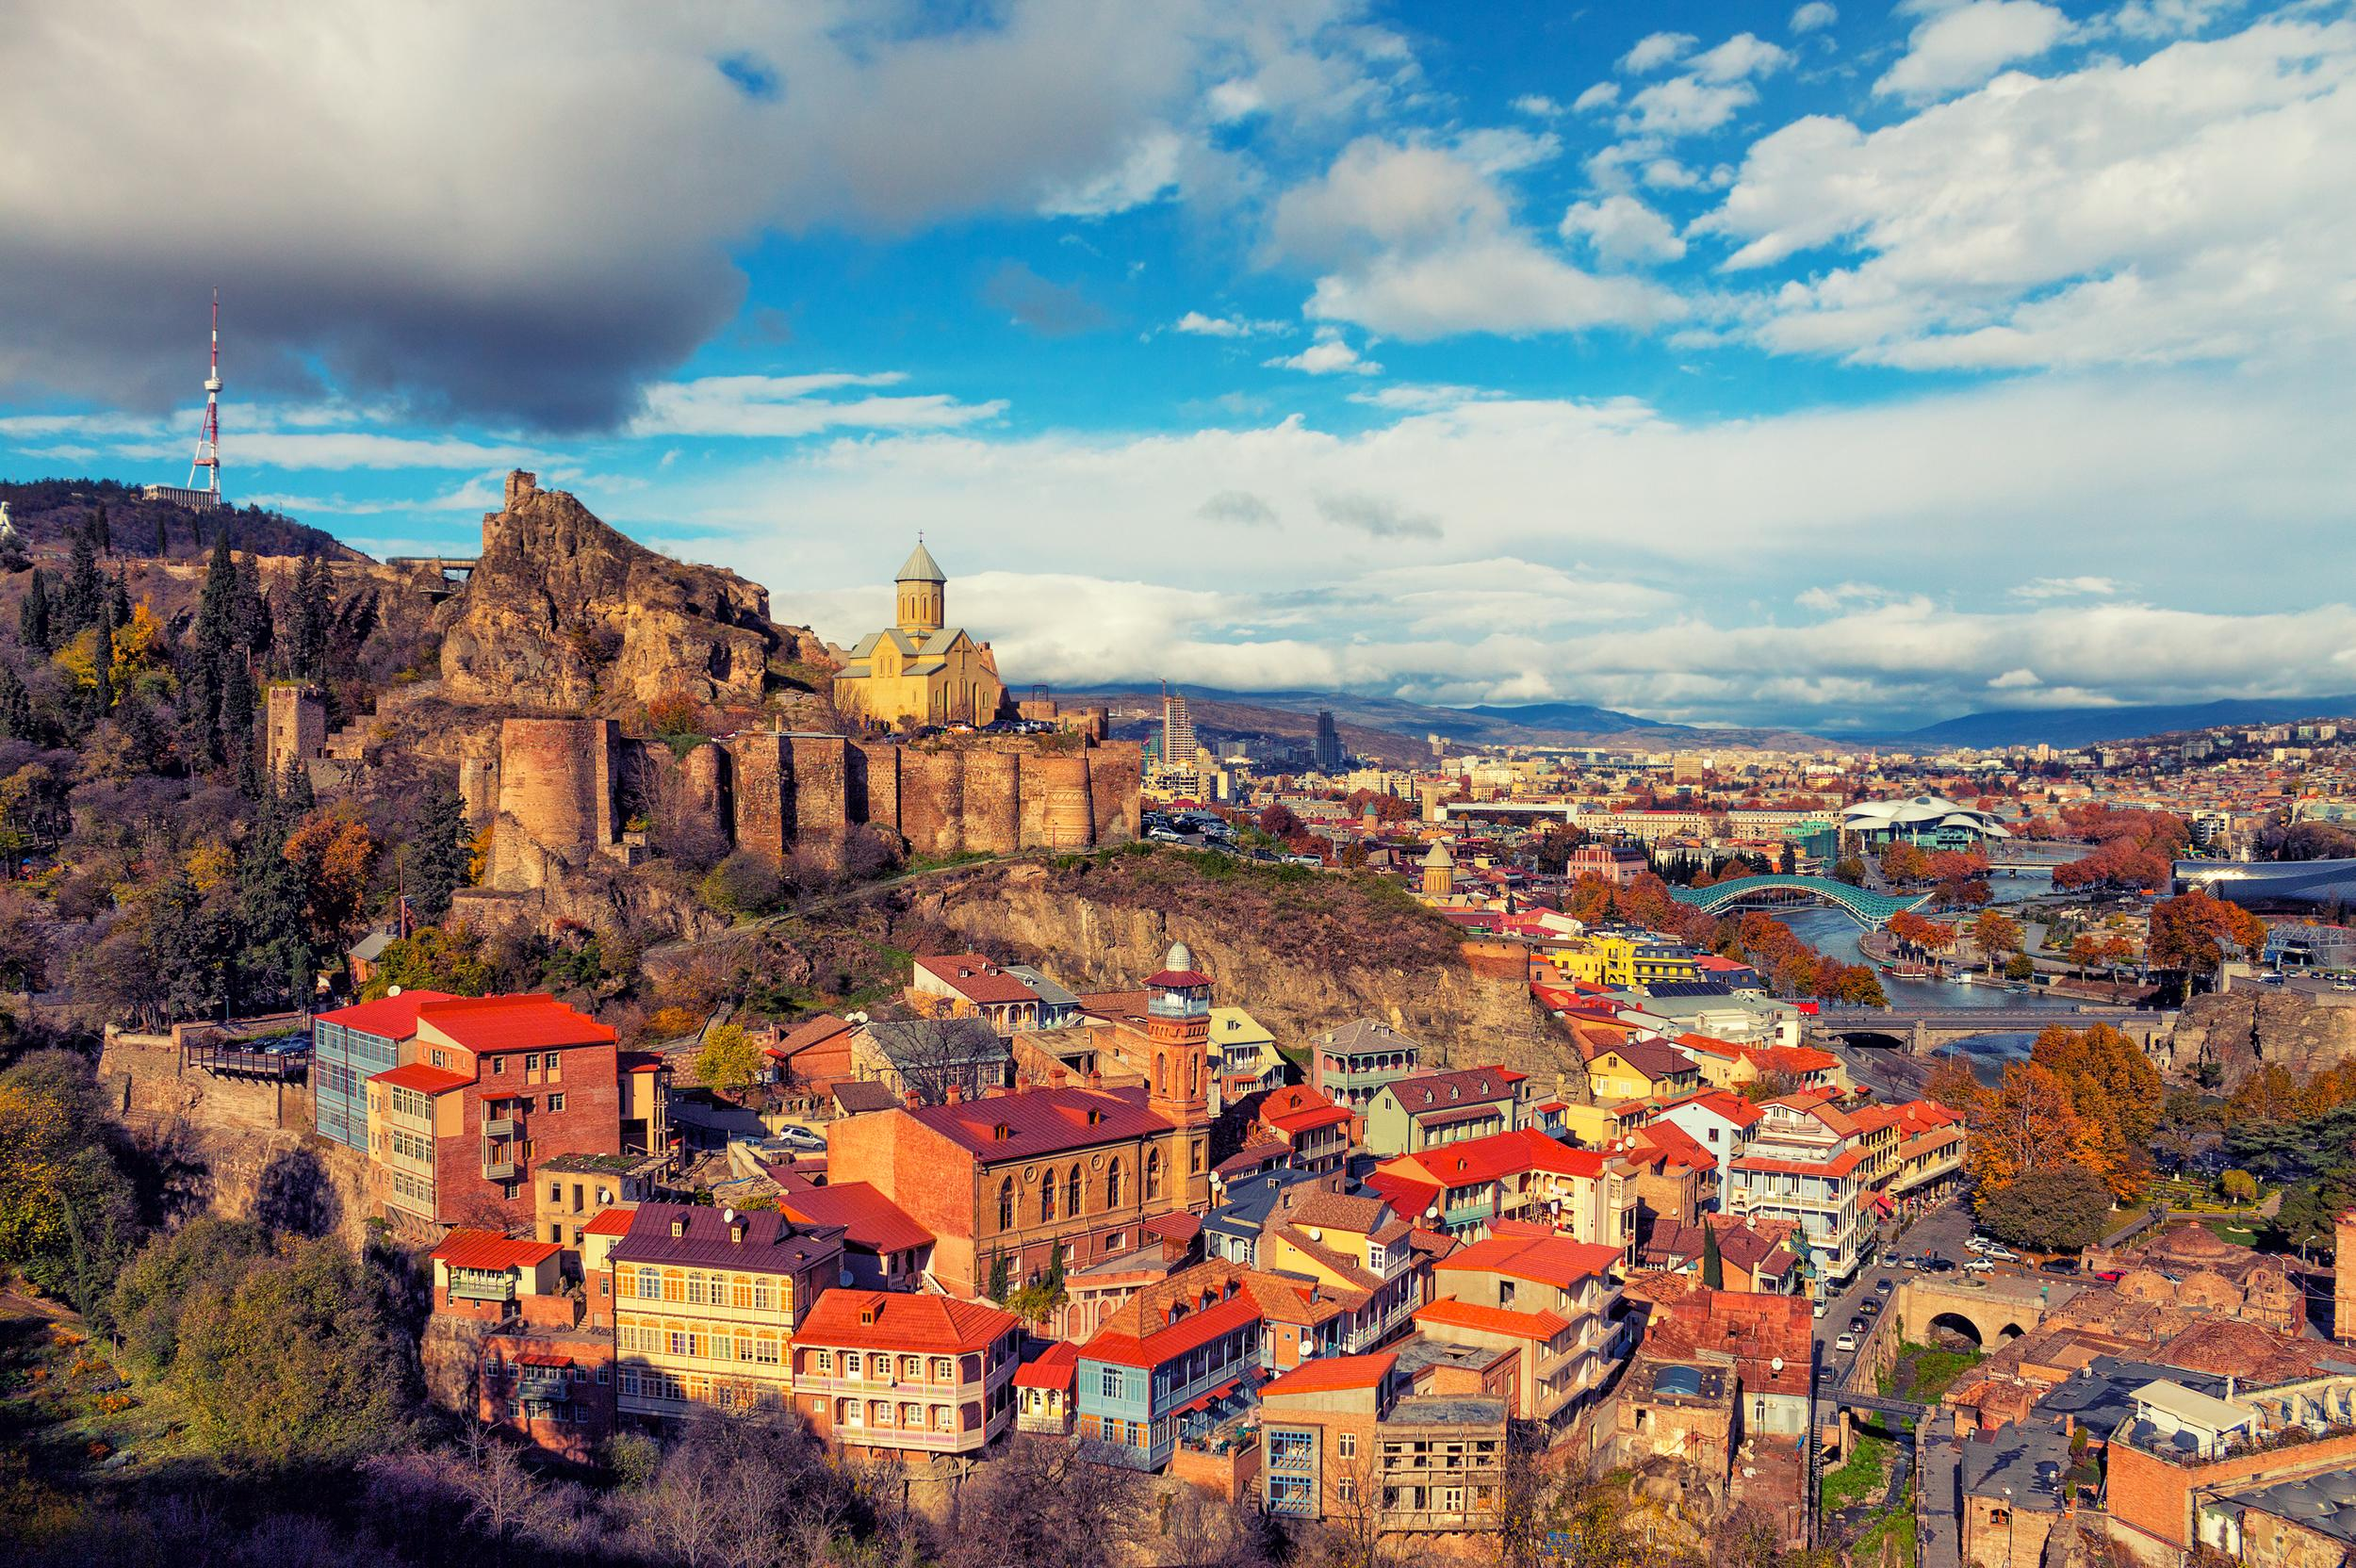 """<p>Found in the valley of the Mtkvari river, Tbilisi has not only an incredibly dramatic setting but also a rich cultural scene. The picturesque historic architecture has welcomed modern updates with huge changes made in the last decade alone.</p>  <p>TripAdvisor recommends the <a href=""""https://www.tripadvisor.co.uk/AttractionProductDetail-g294195-d11456531-Full_Day_Private_Tour_to_Old_Tbilisi_and_Mtskheta-Tbilisi.html?from_tpa=true"""" target=""""_blank"""">Full-Day </a><a href=""""https://www.tripadvisor.com/ShowUserReviews-g294195-d7062318-r399109662-Makho_Tours-Tbilisi.html"""" target=""""_blank"""">Private Tour to Old Tbilisi and Mtskheta</a>, bookable from £49 per person.</p>"""